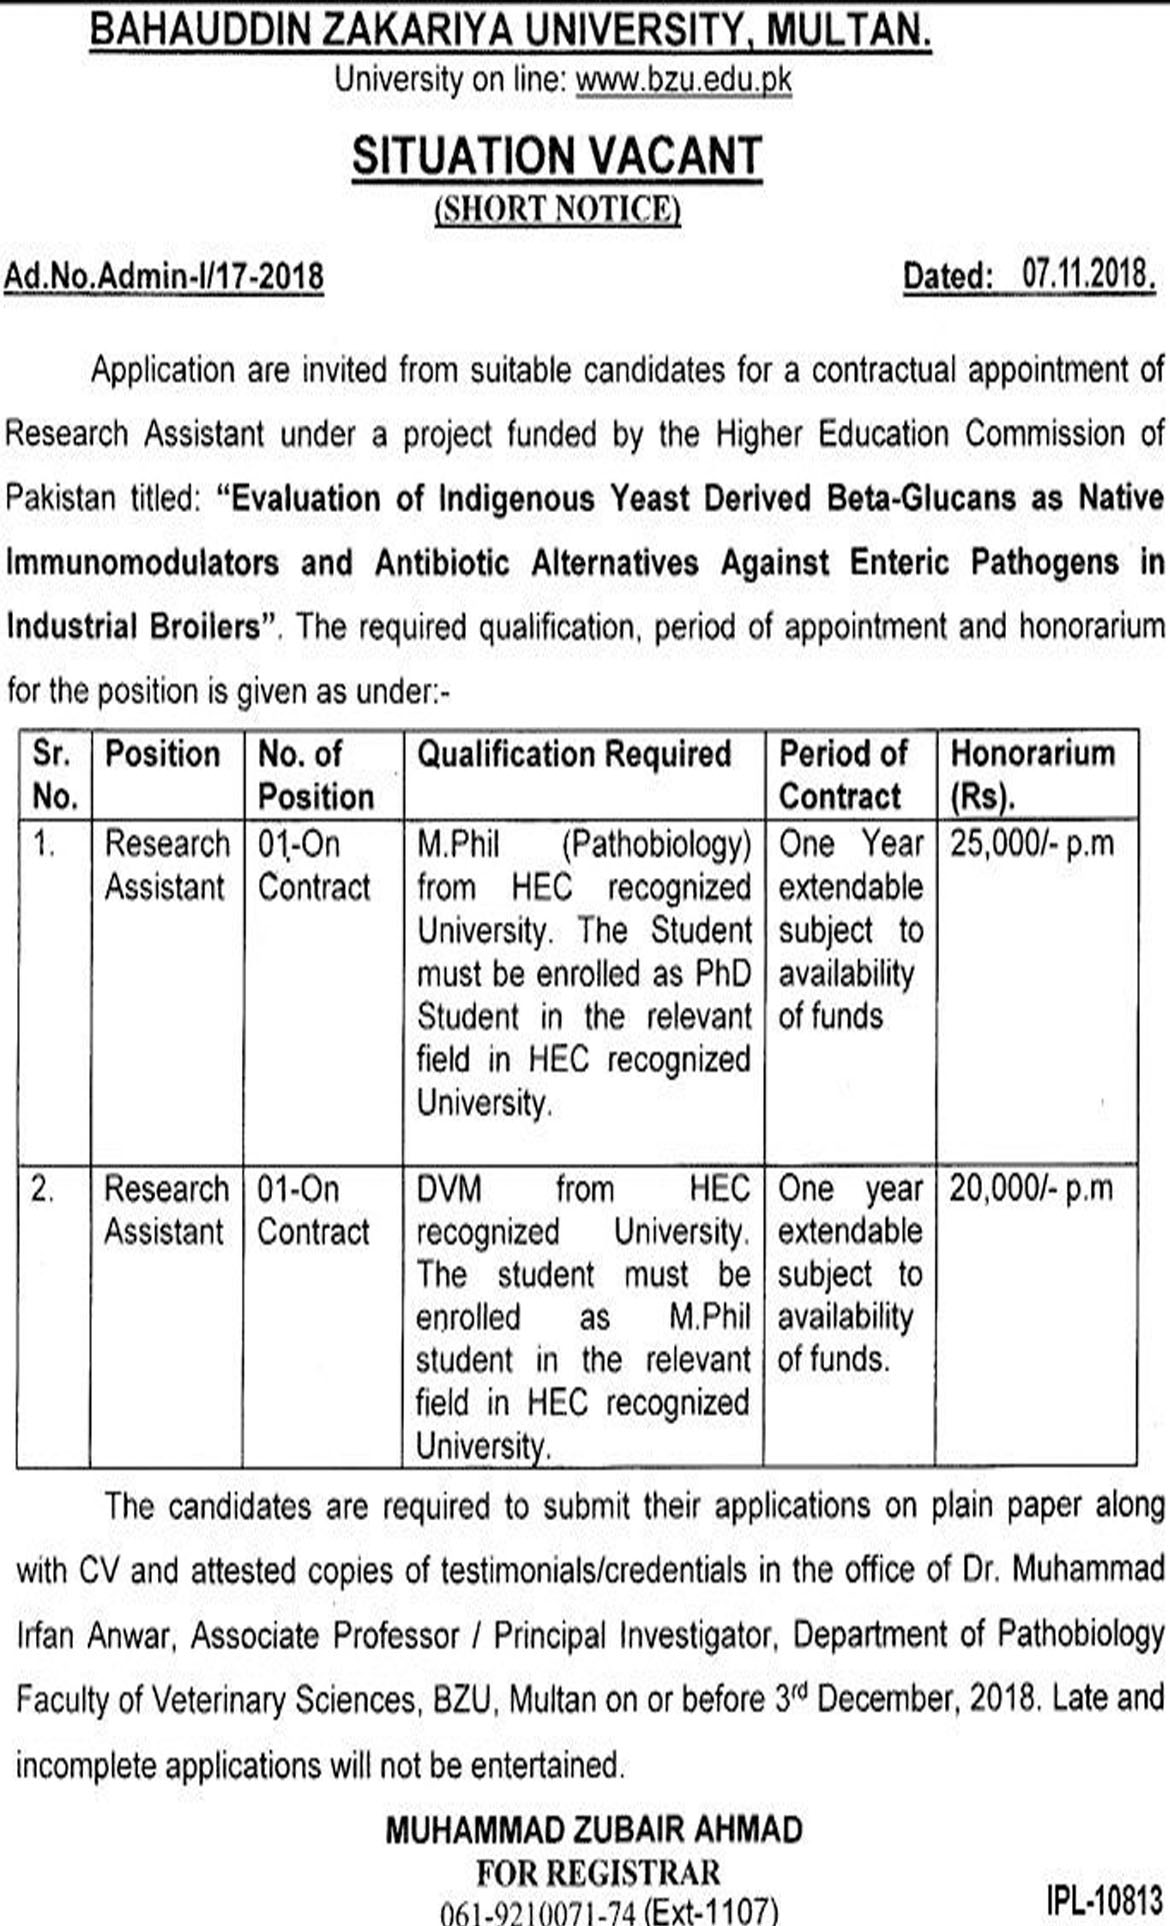 Jobs In Bahauddin Zakariya University BZU 13 Nov 2018